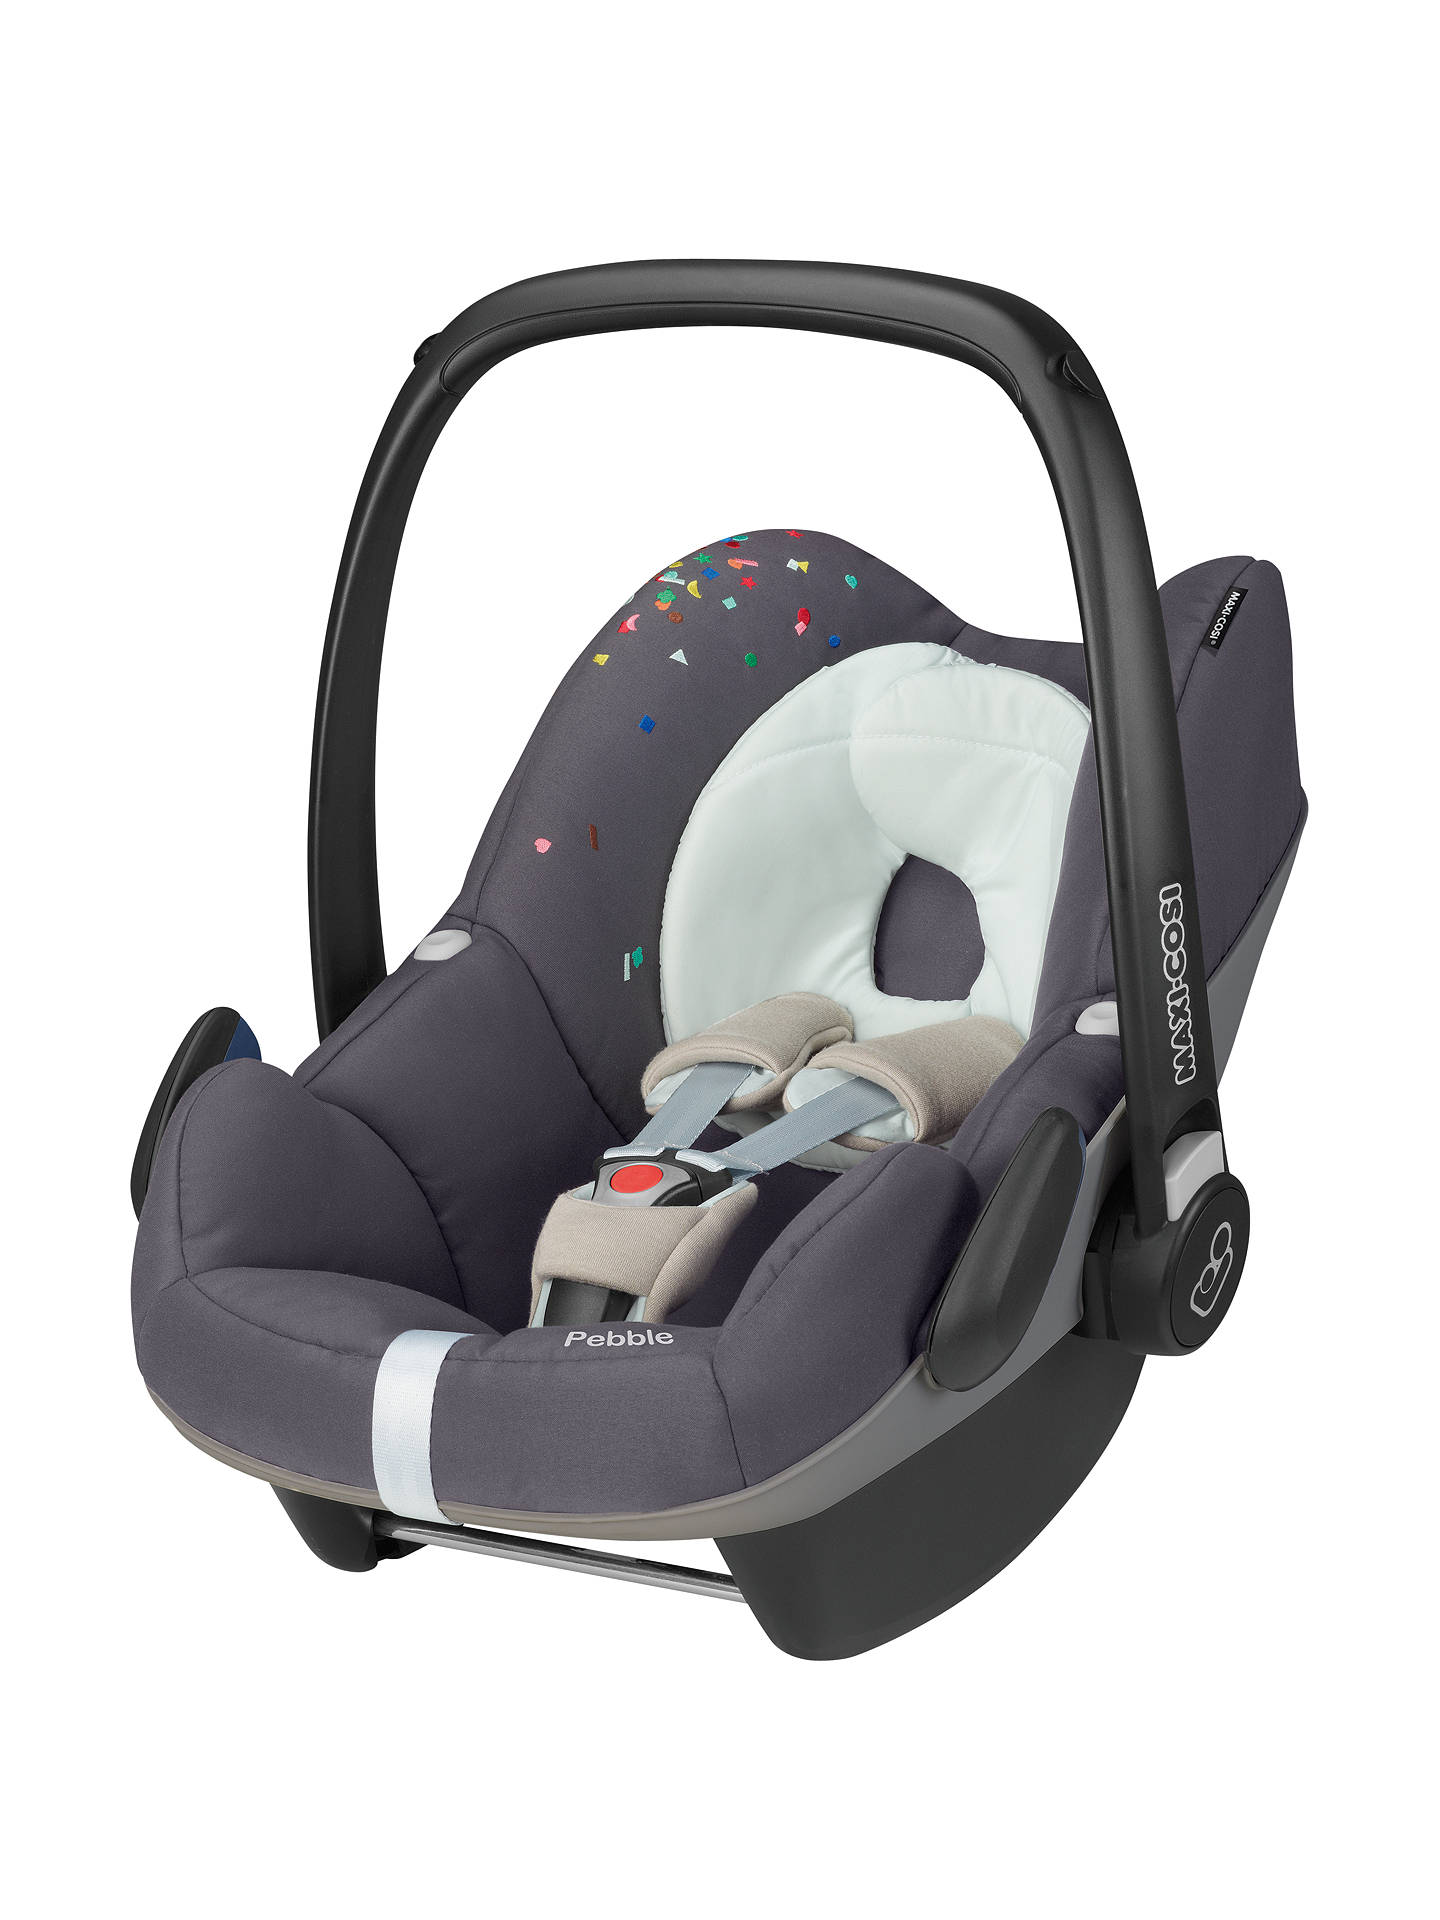 Verwonderend Maxi-Cosi Pebble Baby Car Seat, Confetti at John Lewis & Partners NH-69